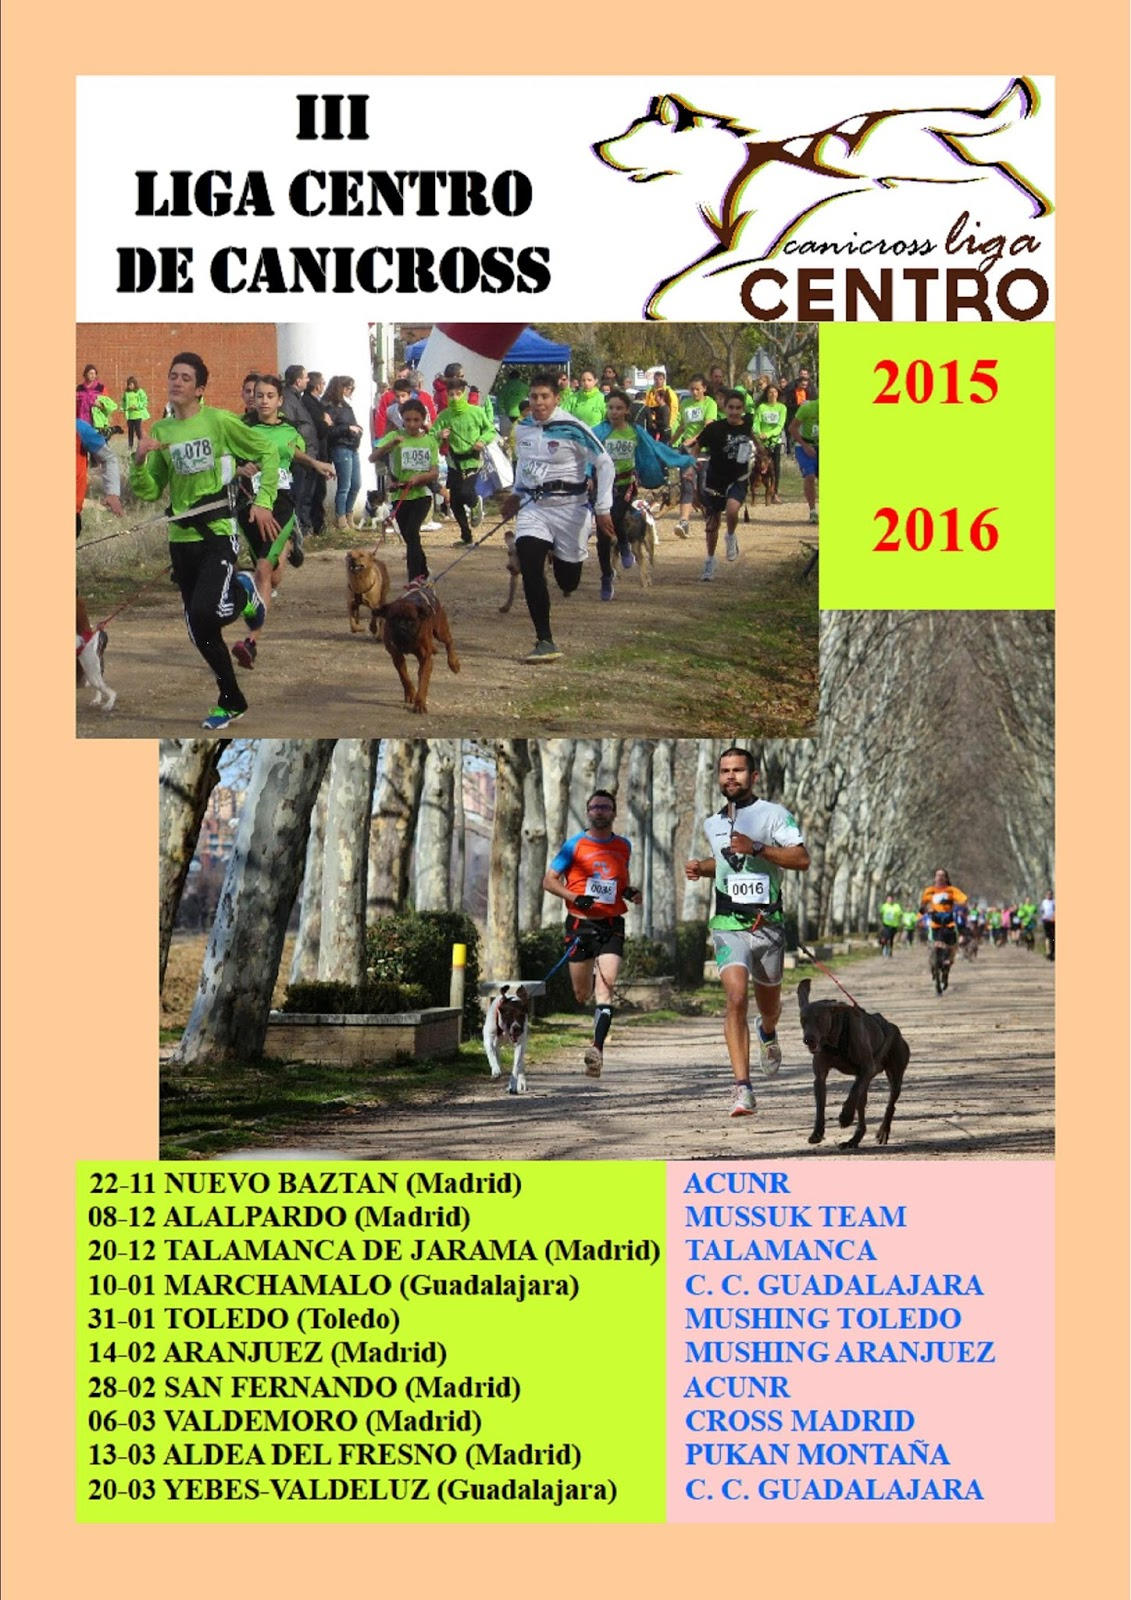 canicross calendario